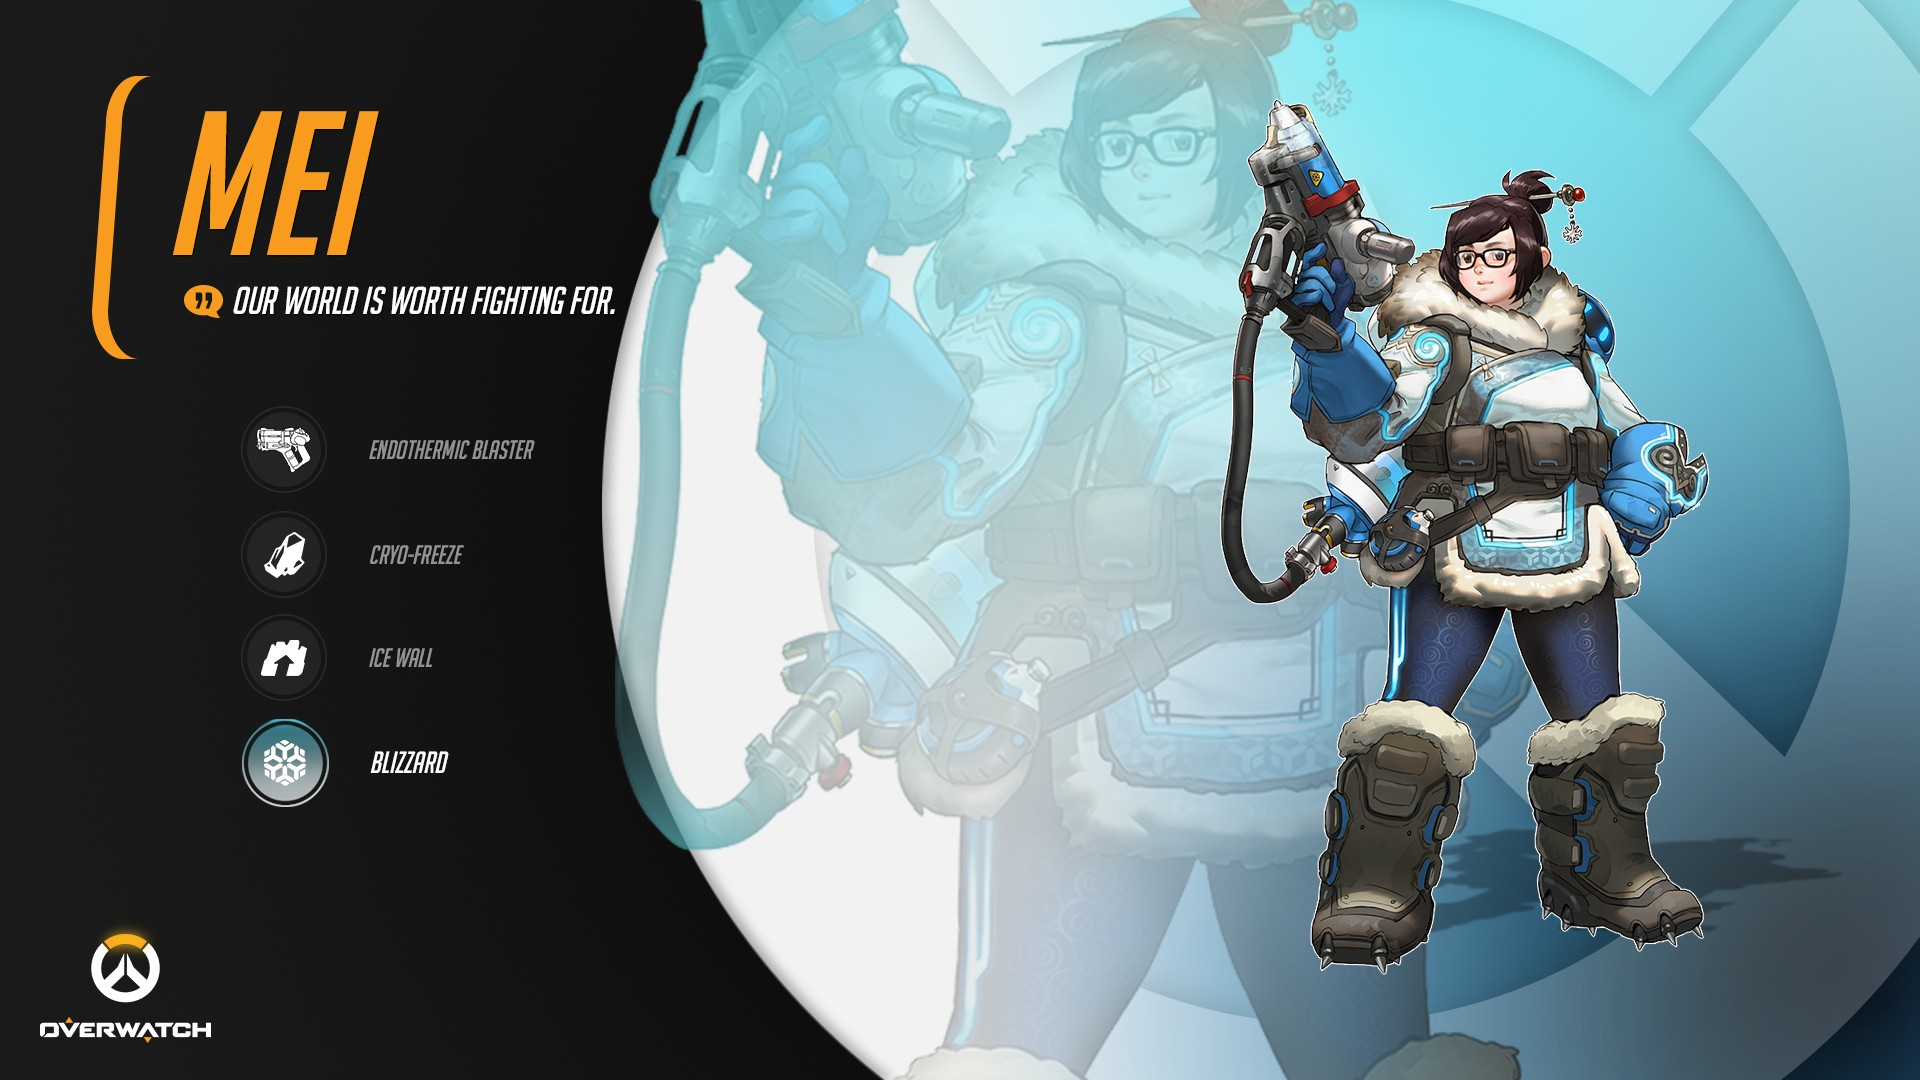 overwatch mei wallpaper ·① download free wallpapers for desktop and